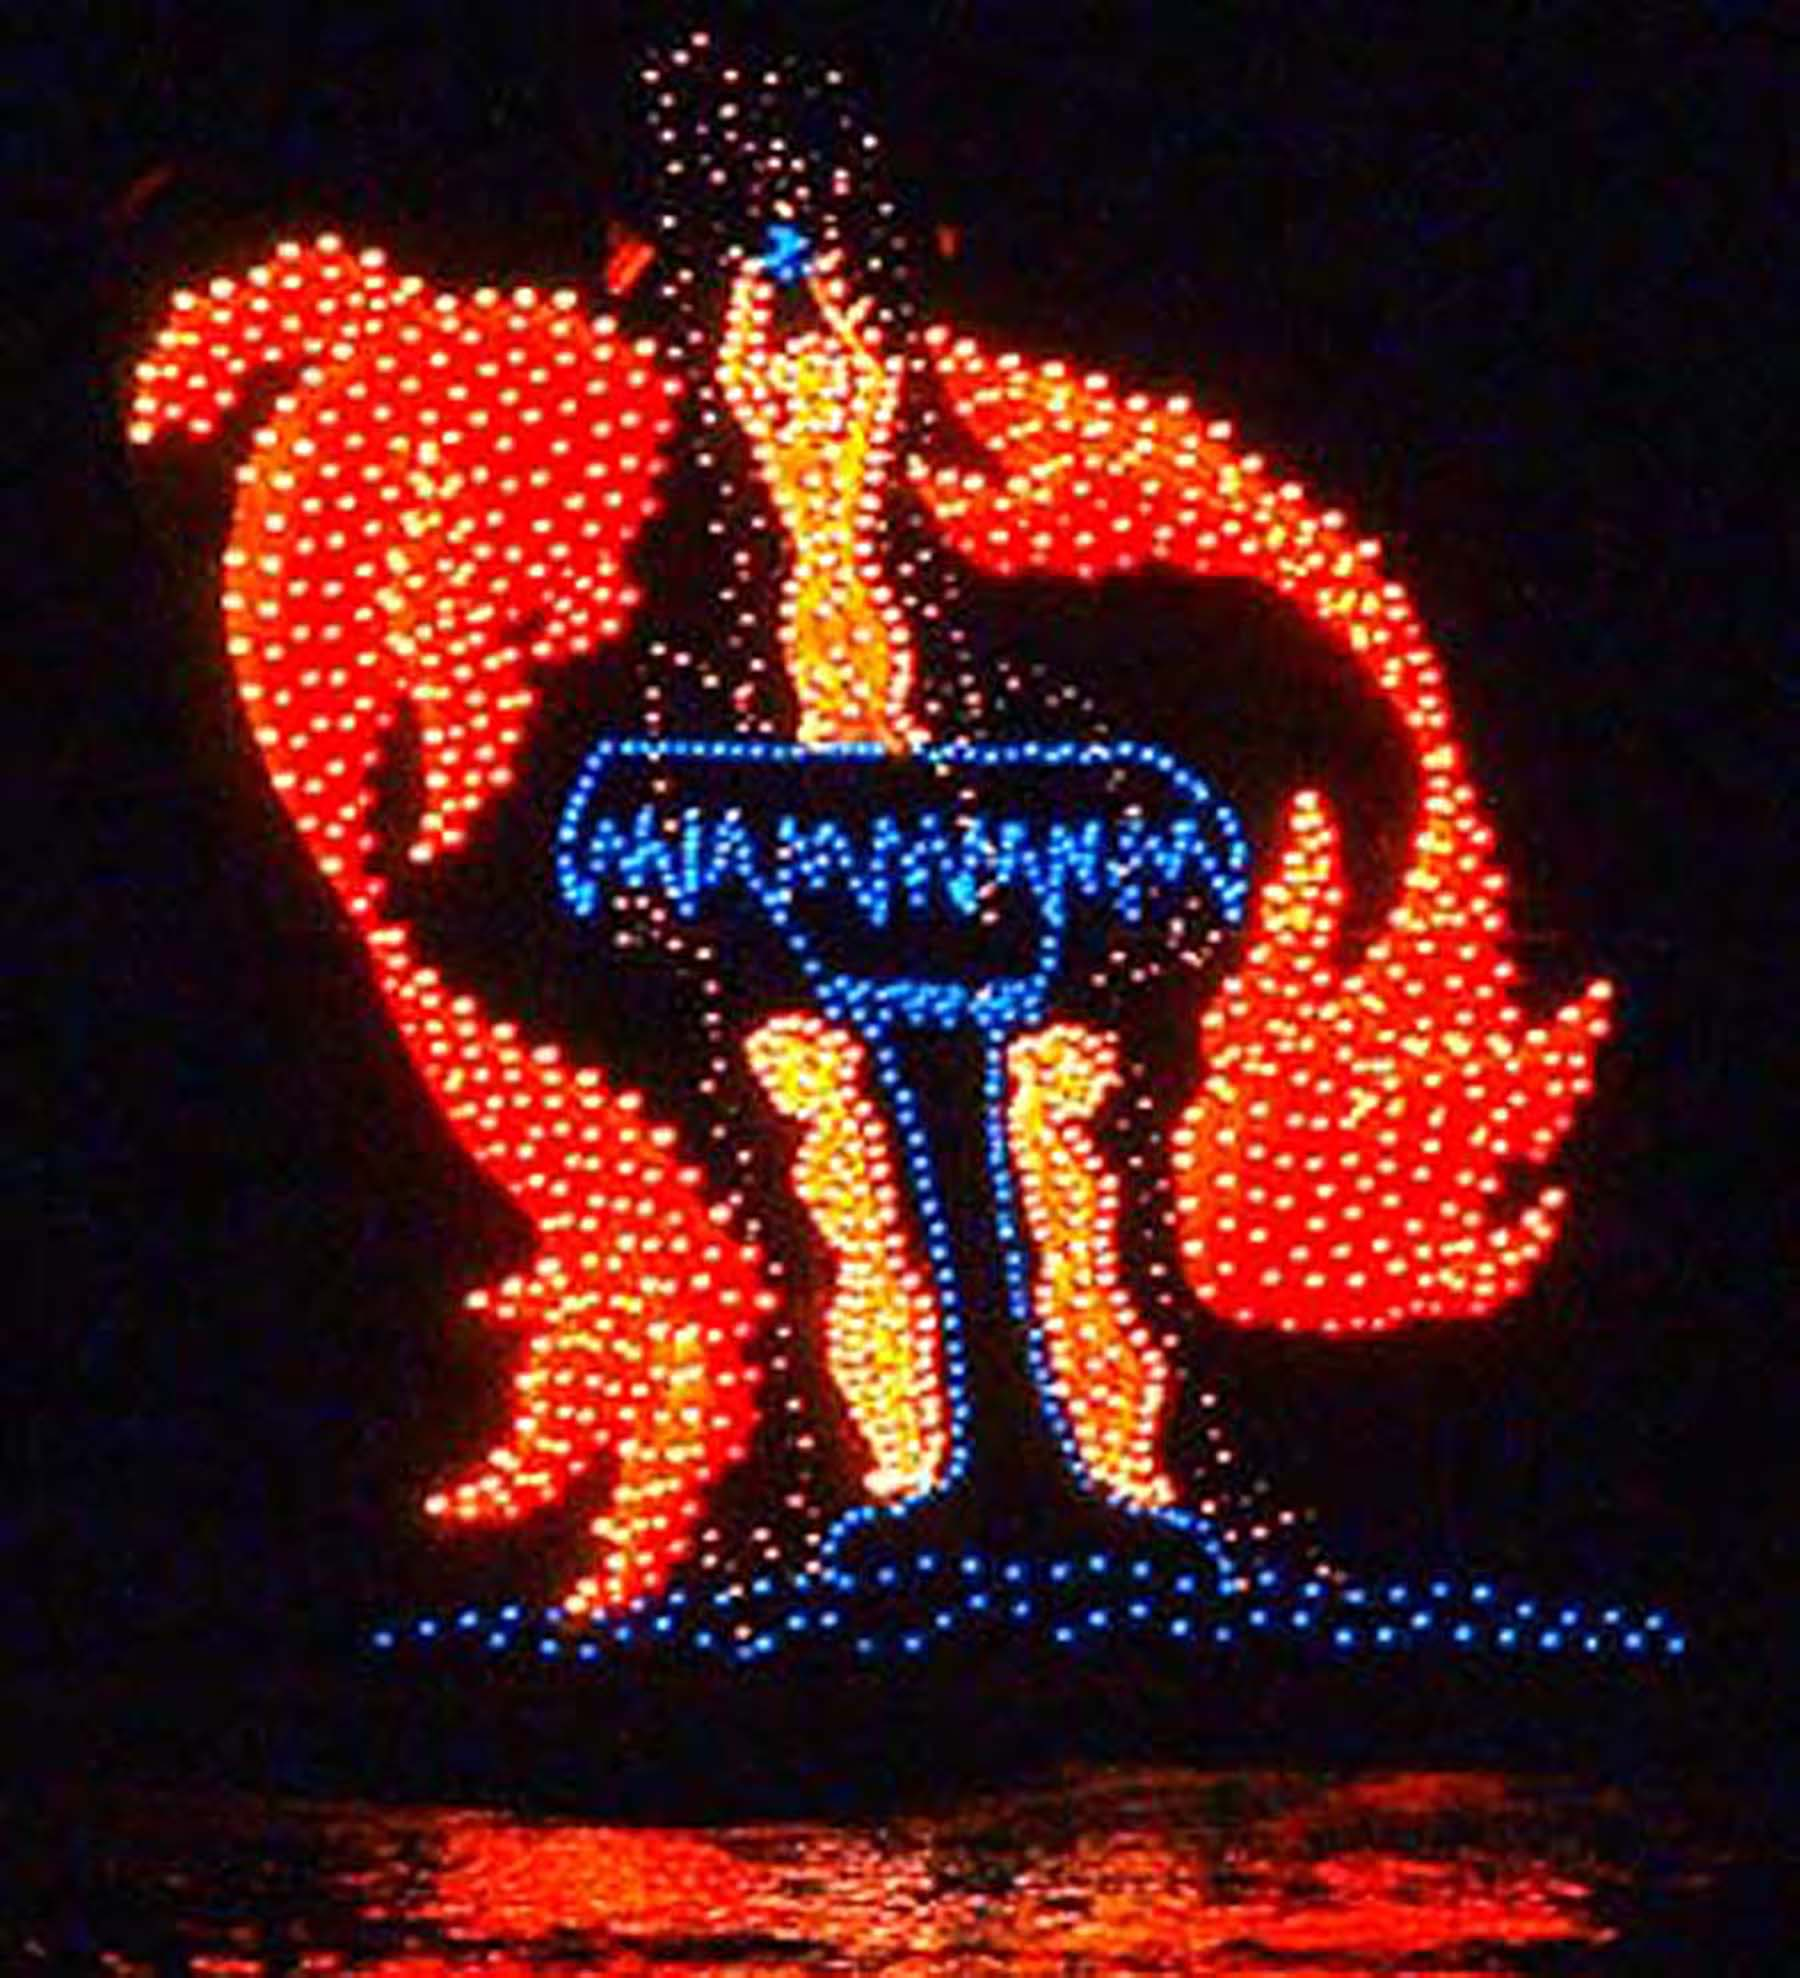 https://alabama-travel.s3.amazonaws.com/partners-uploads/photo/image/5f2841691153950008a3fa2f/COTR Night Parade - fountain float.jpg